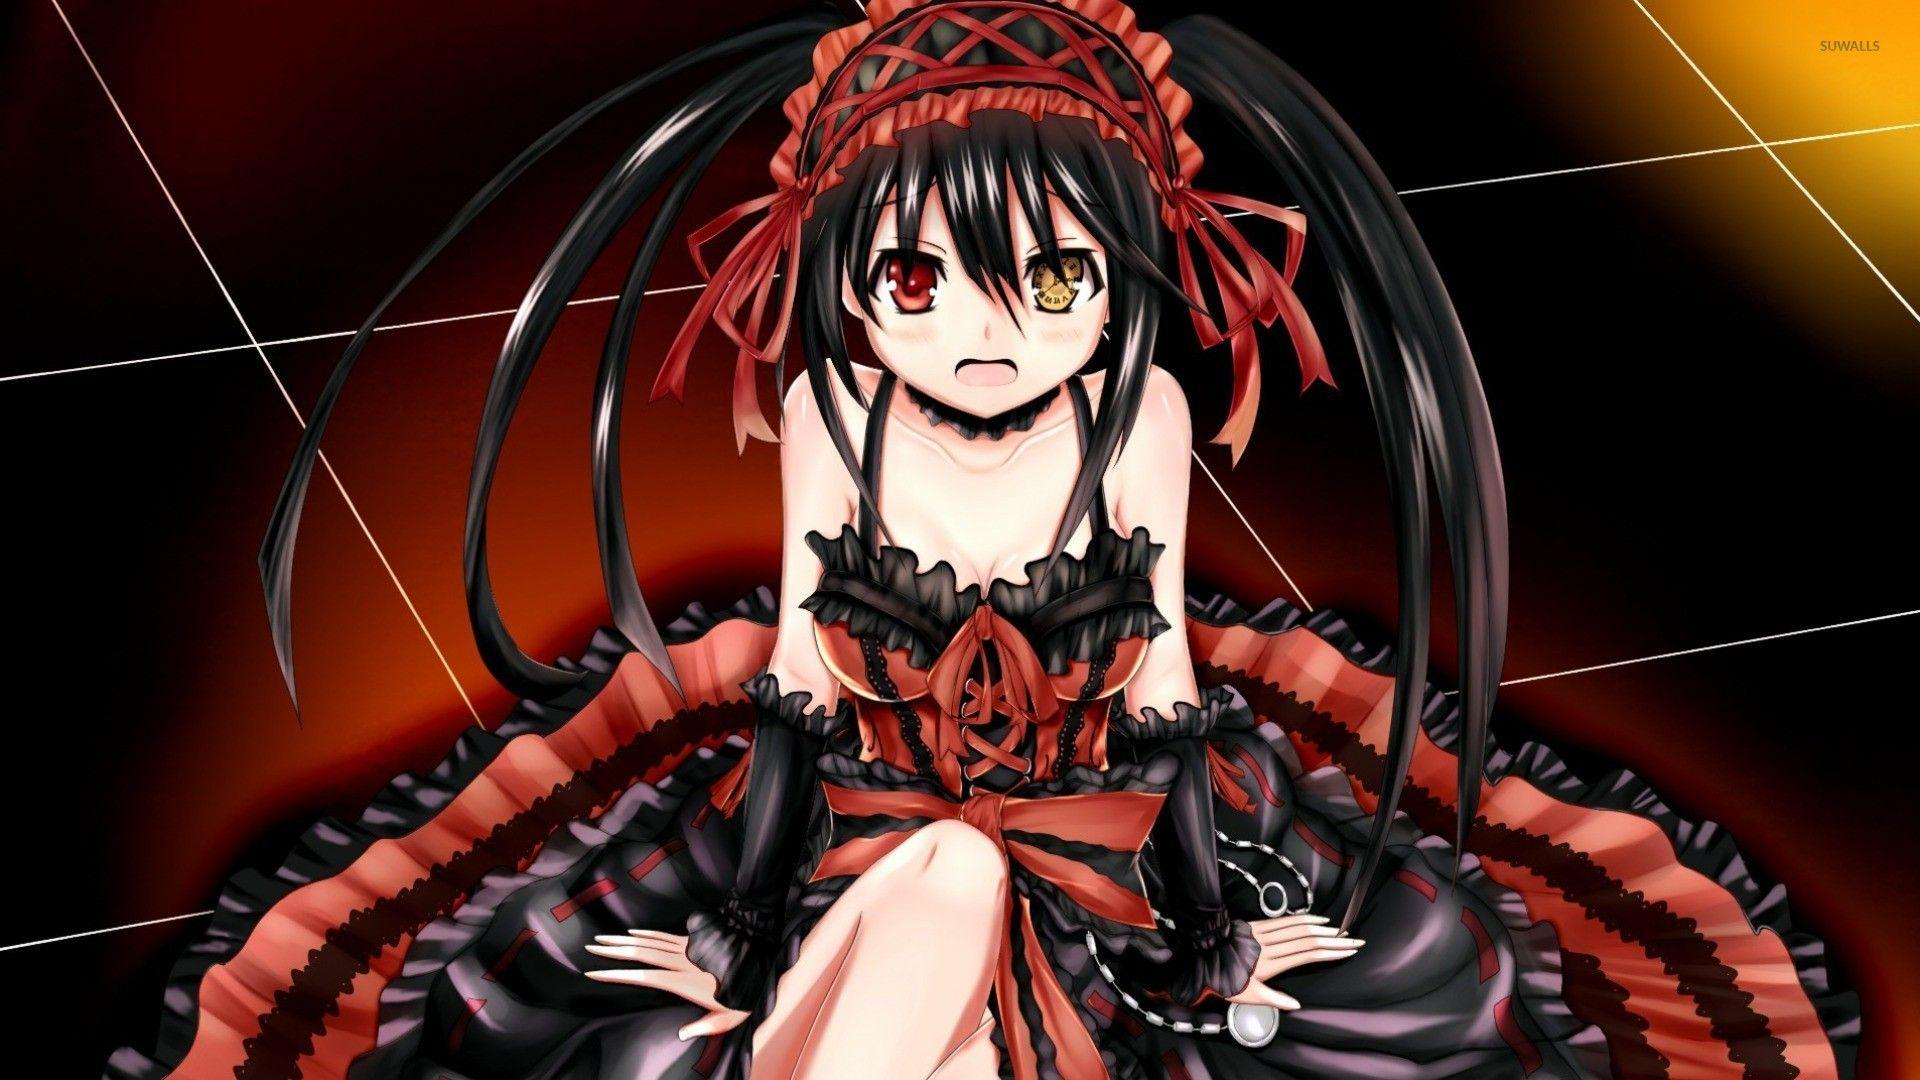 Date A Live Wallpapers 1920x1080